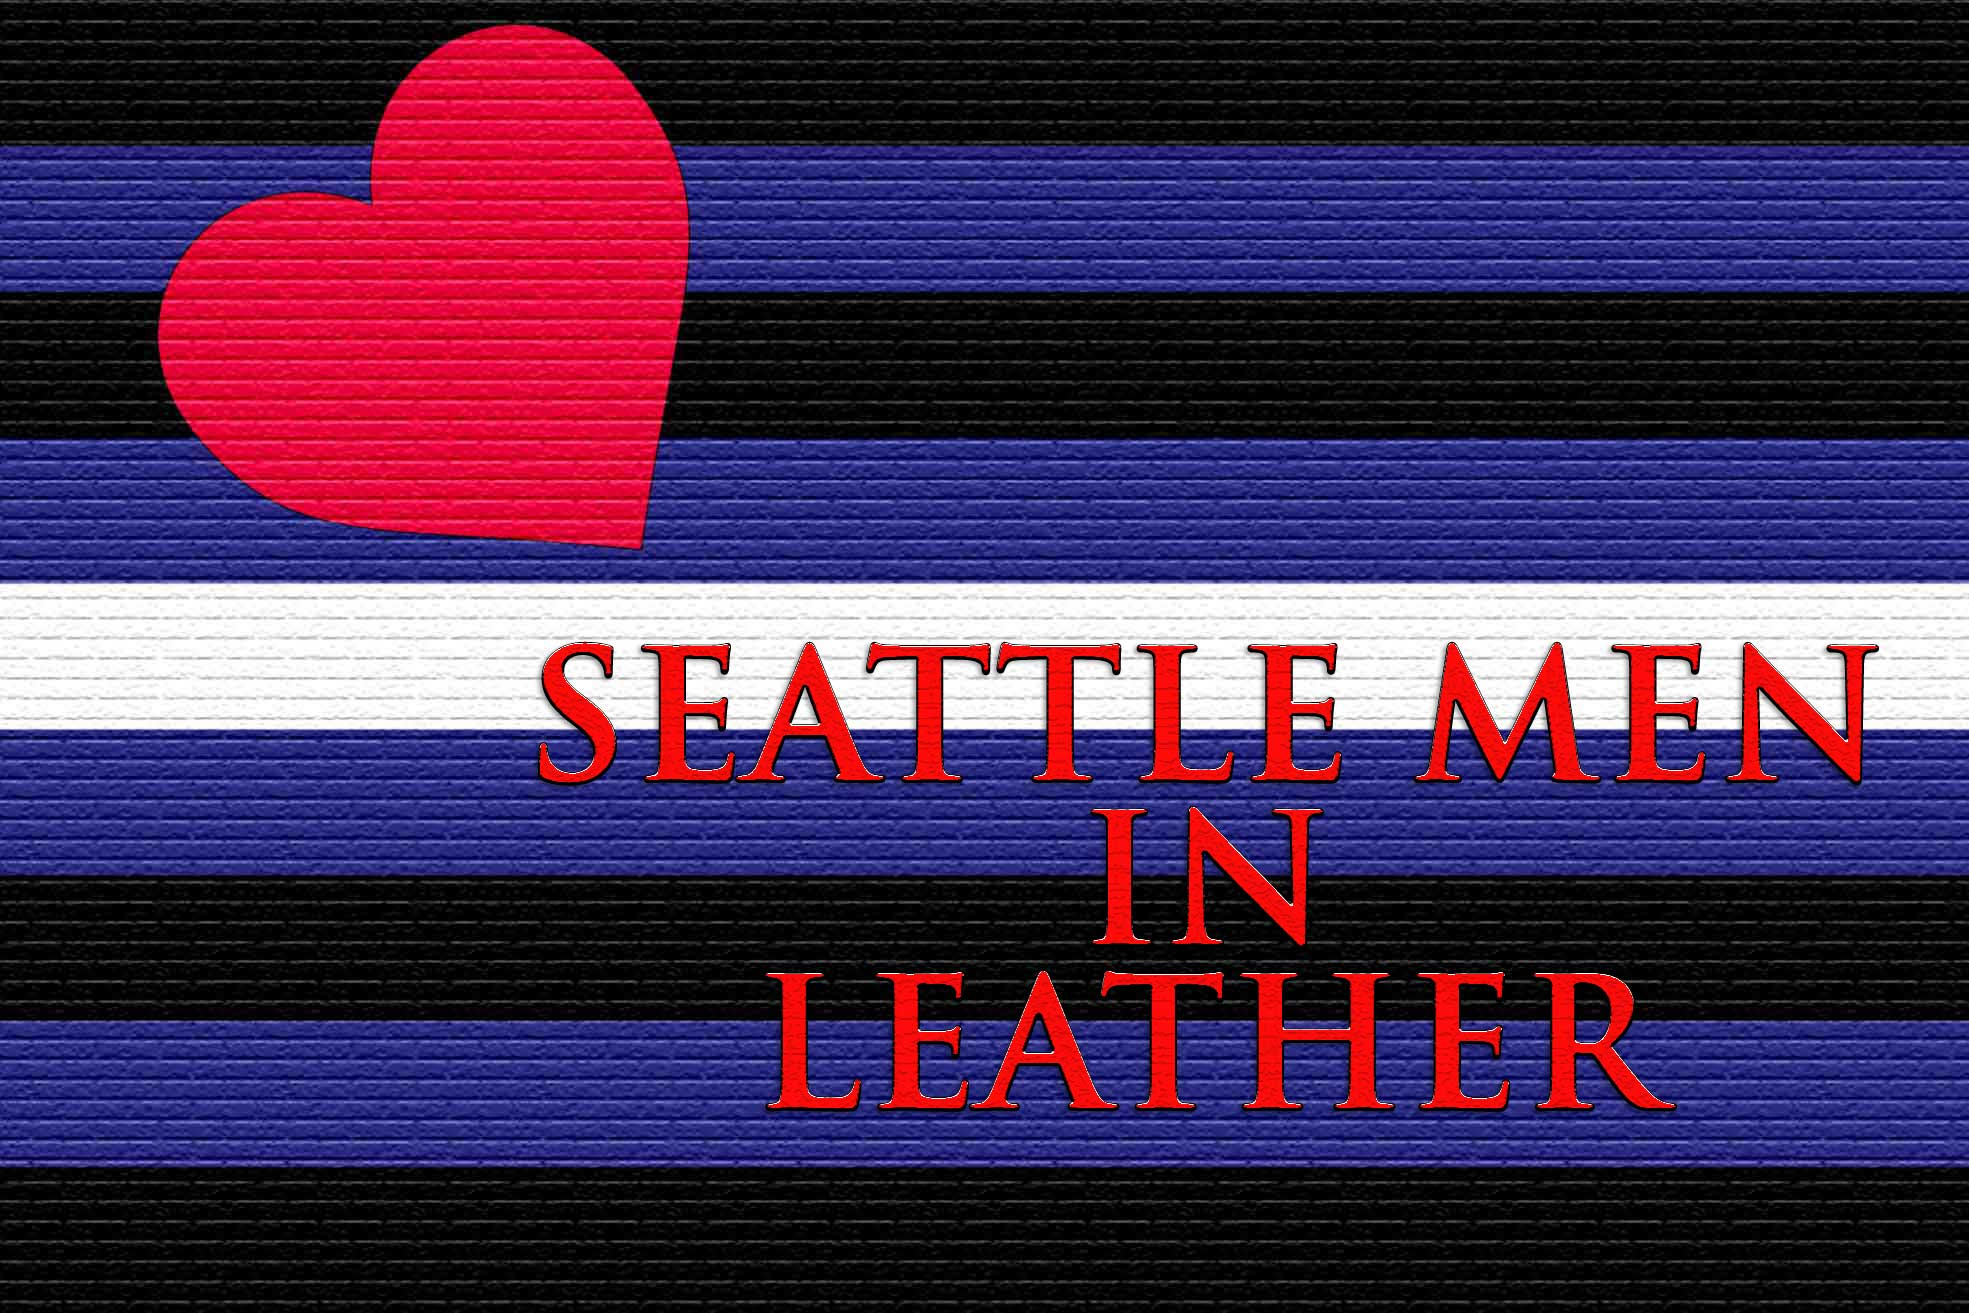 Seattle Men in Leather